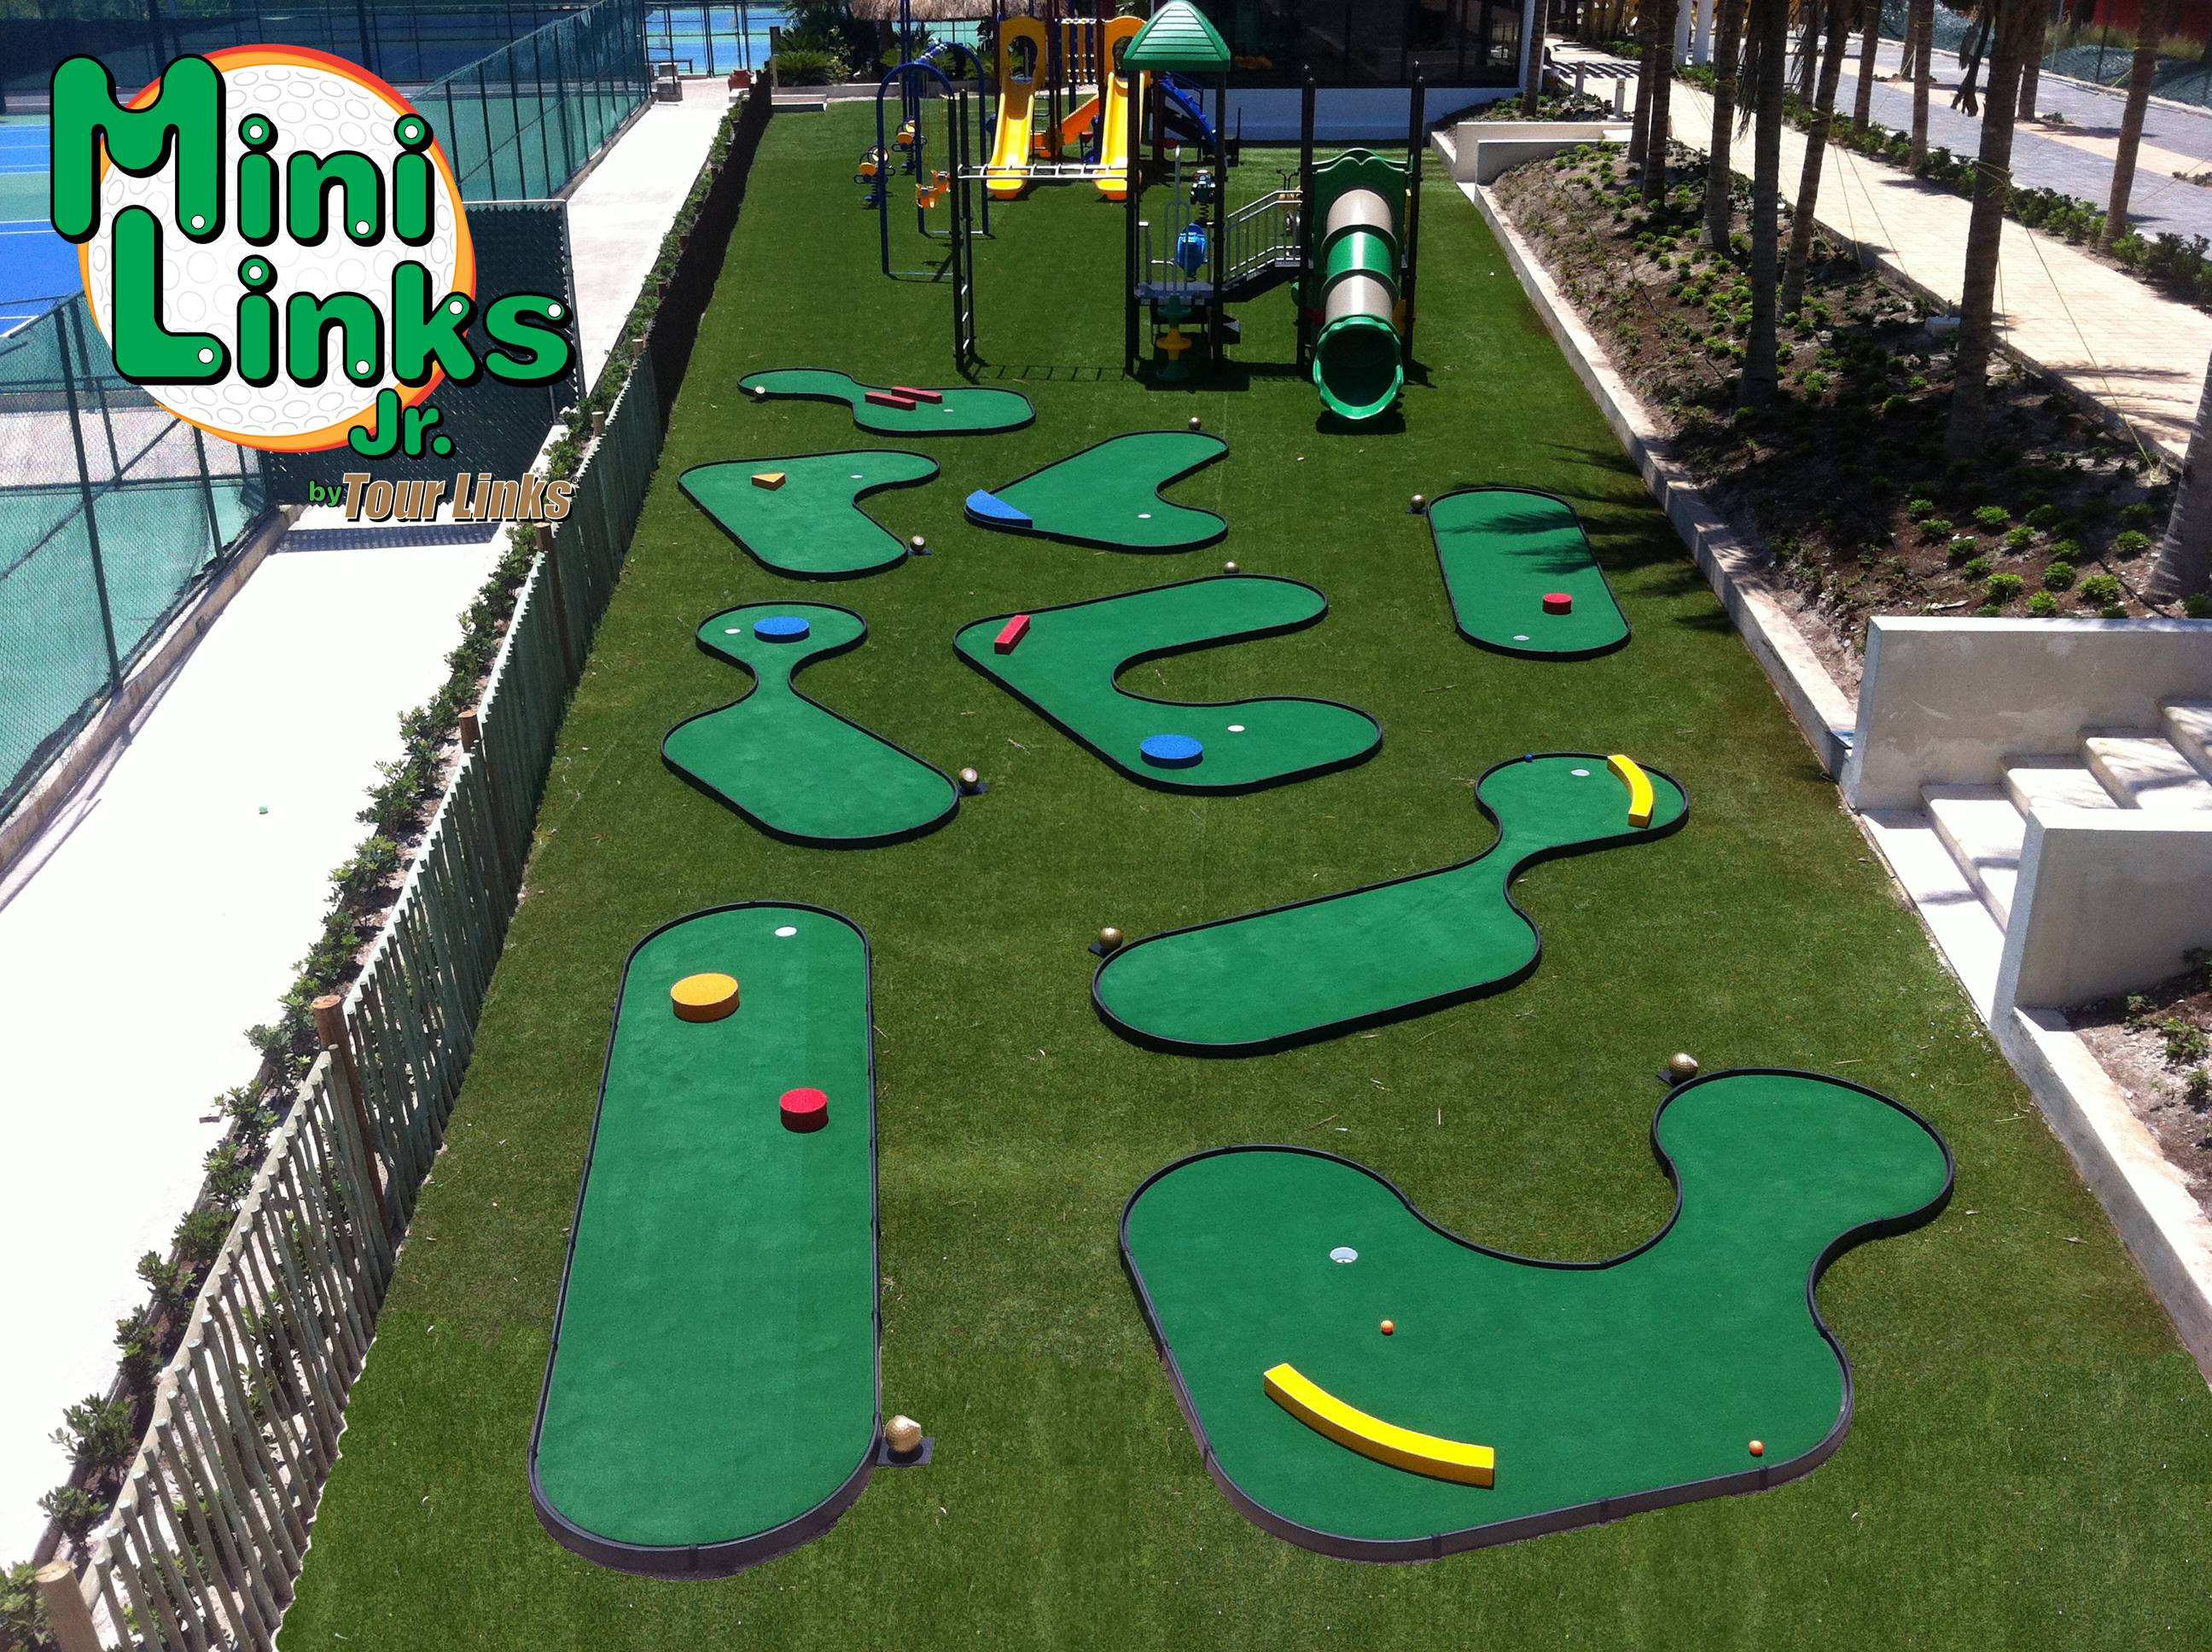 Wondrous Tour Links Miniature Golf Tour Links Download Free Architecture Designs Intelgarnamadebymaigaardcom